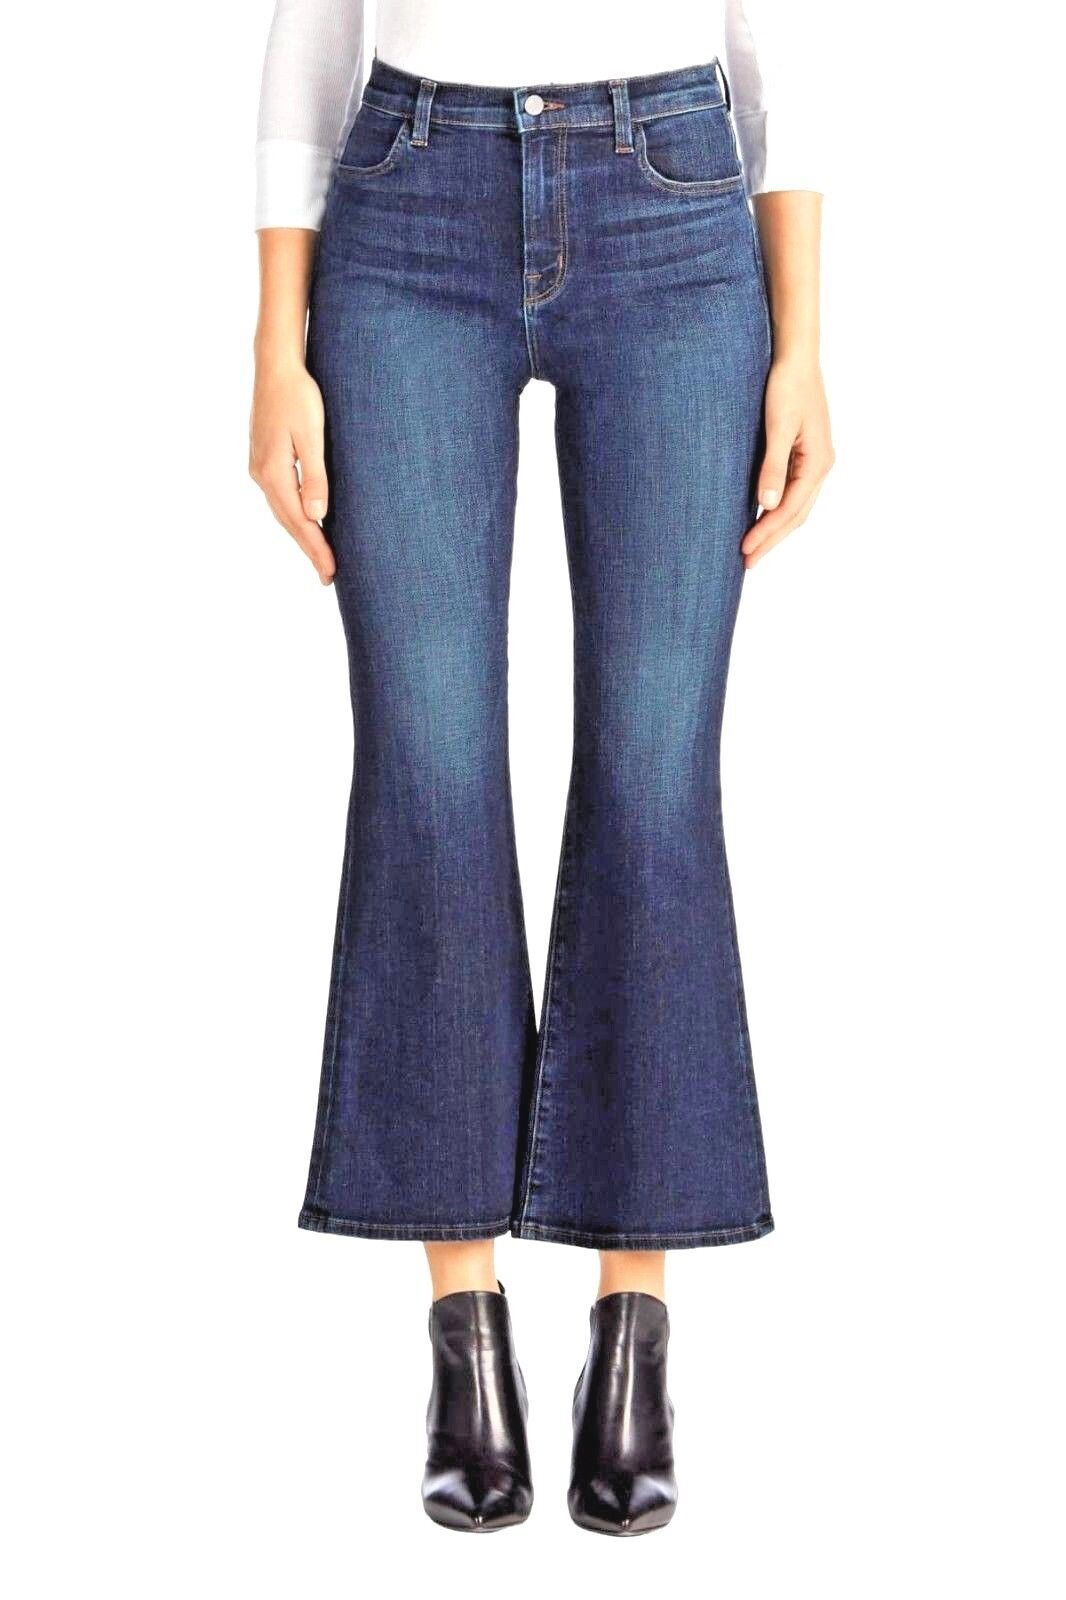 J BRAND CAROLINA WOMEN'S HIGH RISE ANKLE FLARE JEANS IN MISMERIC WASH 24 NEW